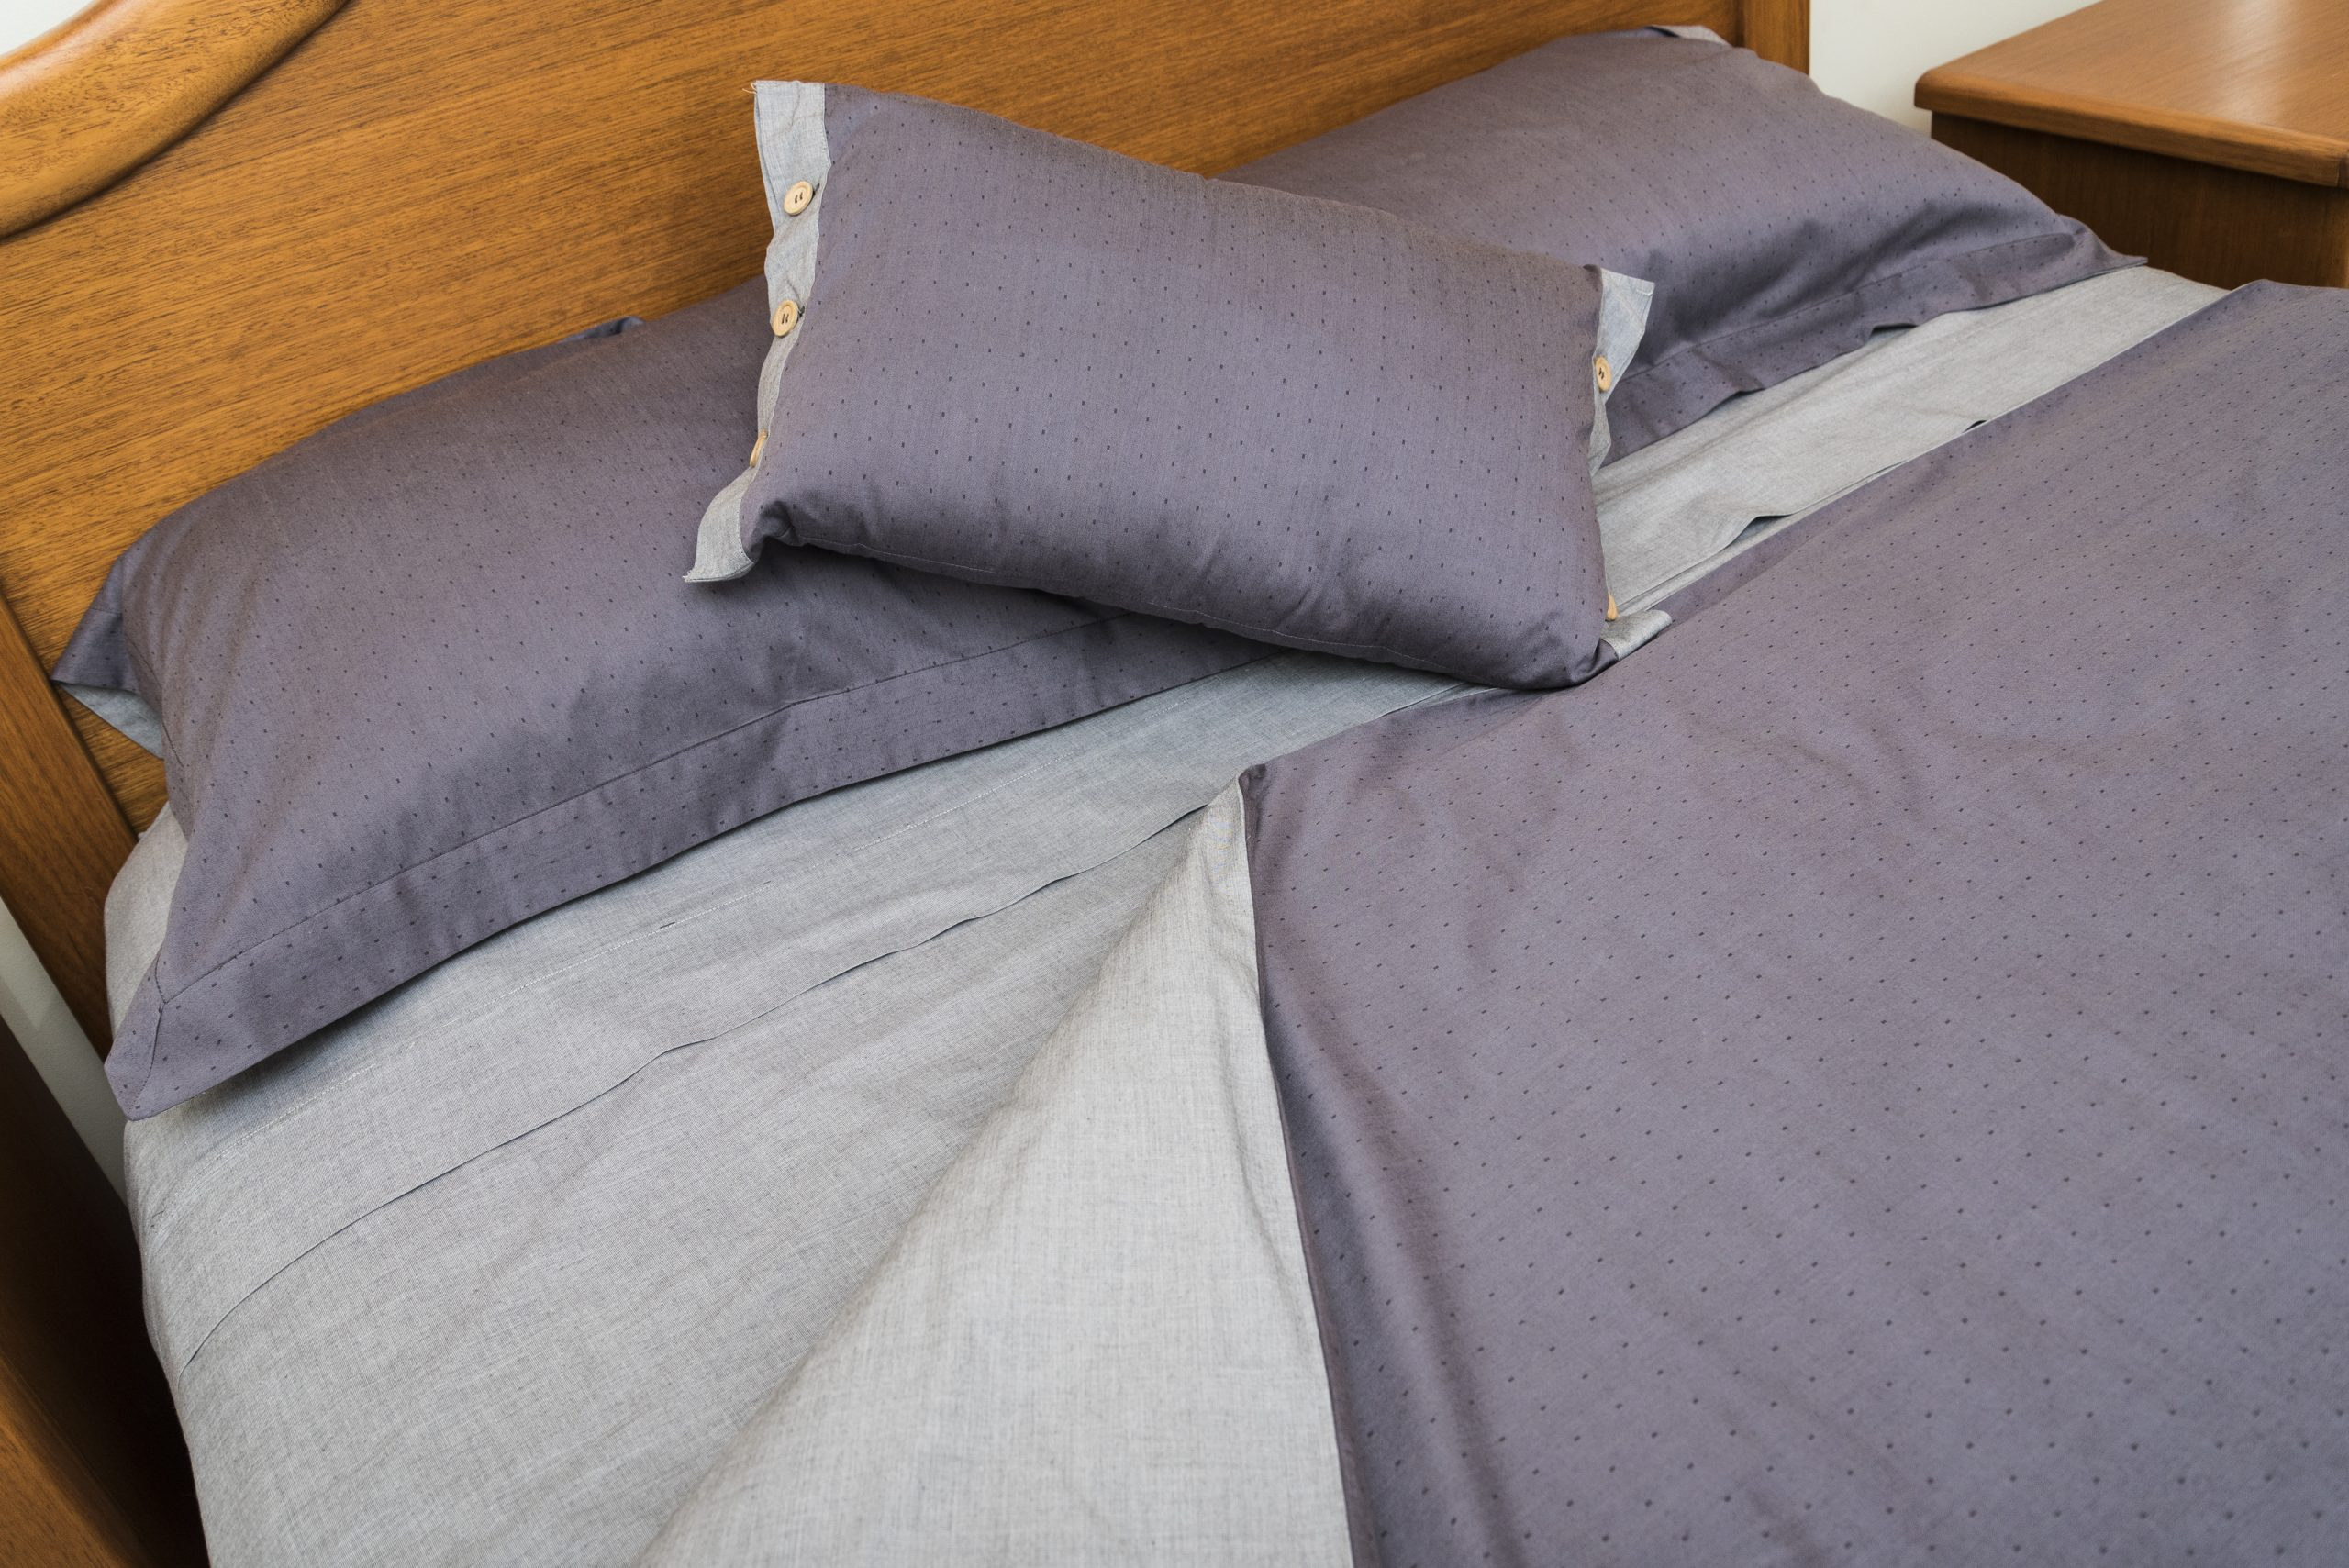 Deluxe O'Shanna Bamboo Bed Sheets - King